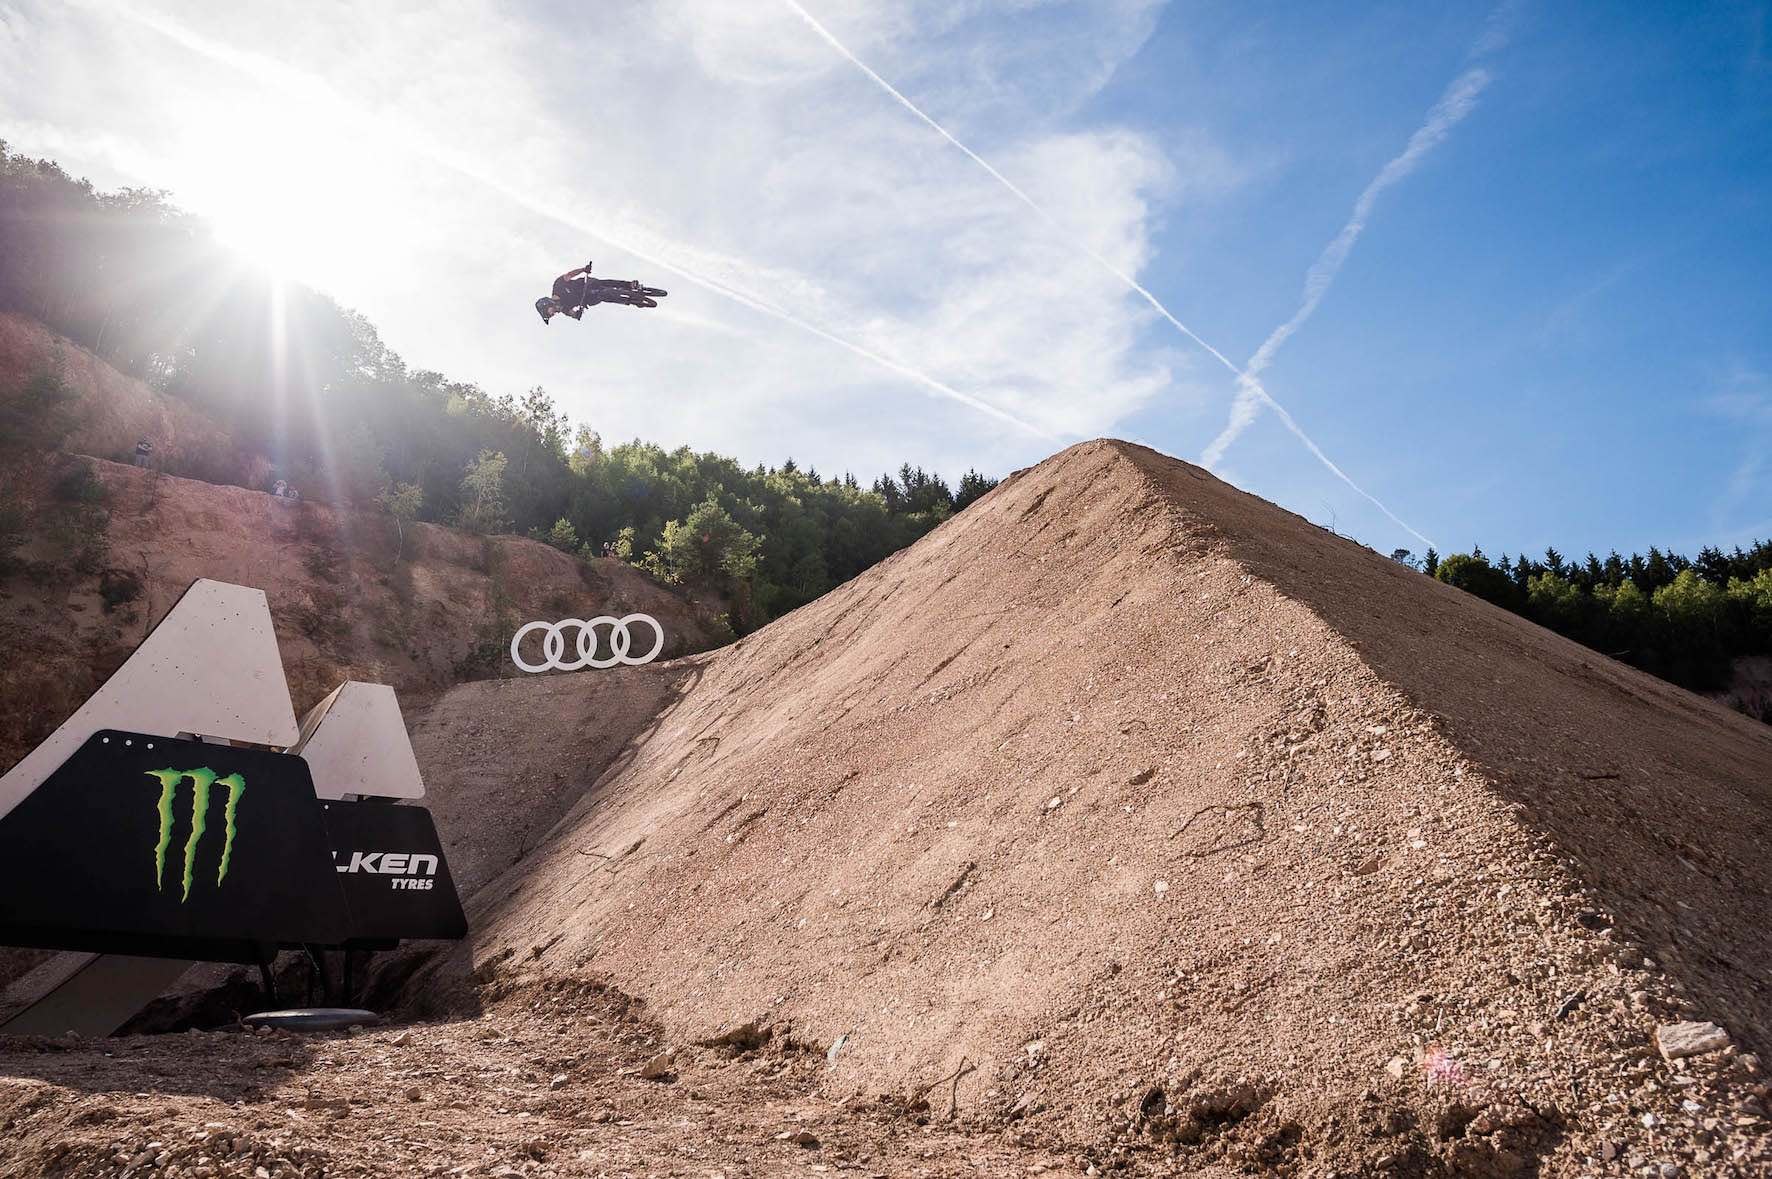 We interview Max Fredriksson about riding at the Audi Nines Slopestyle and Freeride MTB event